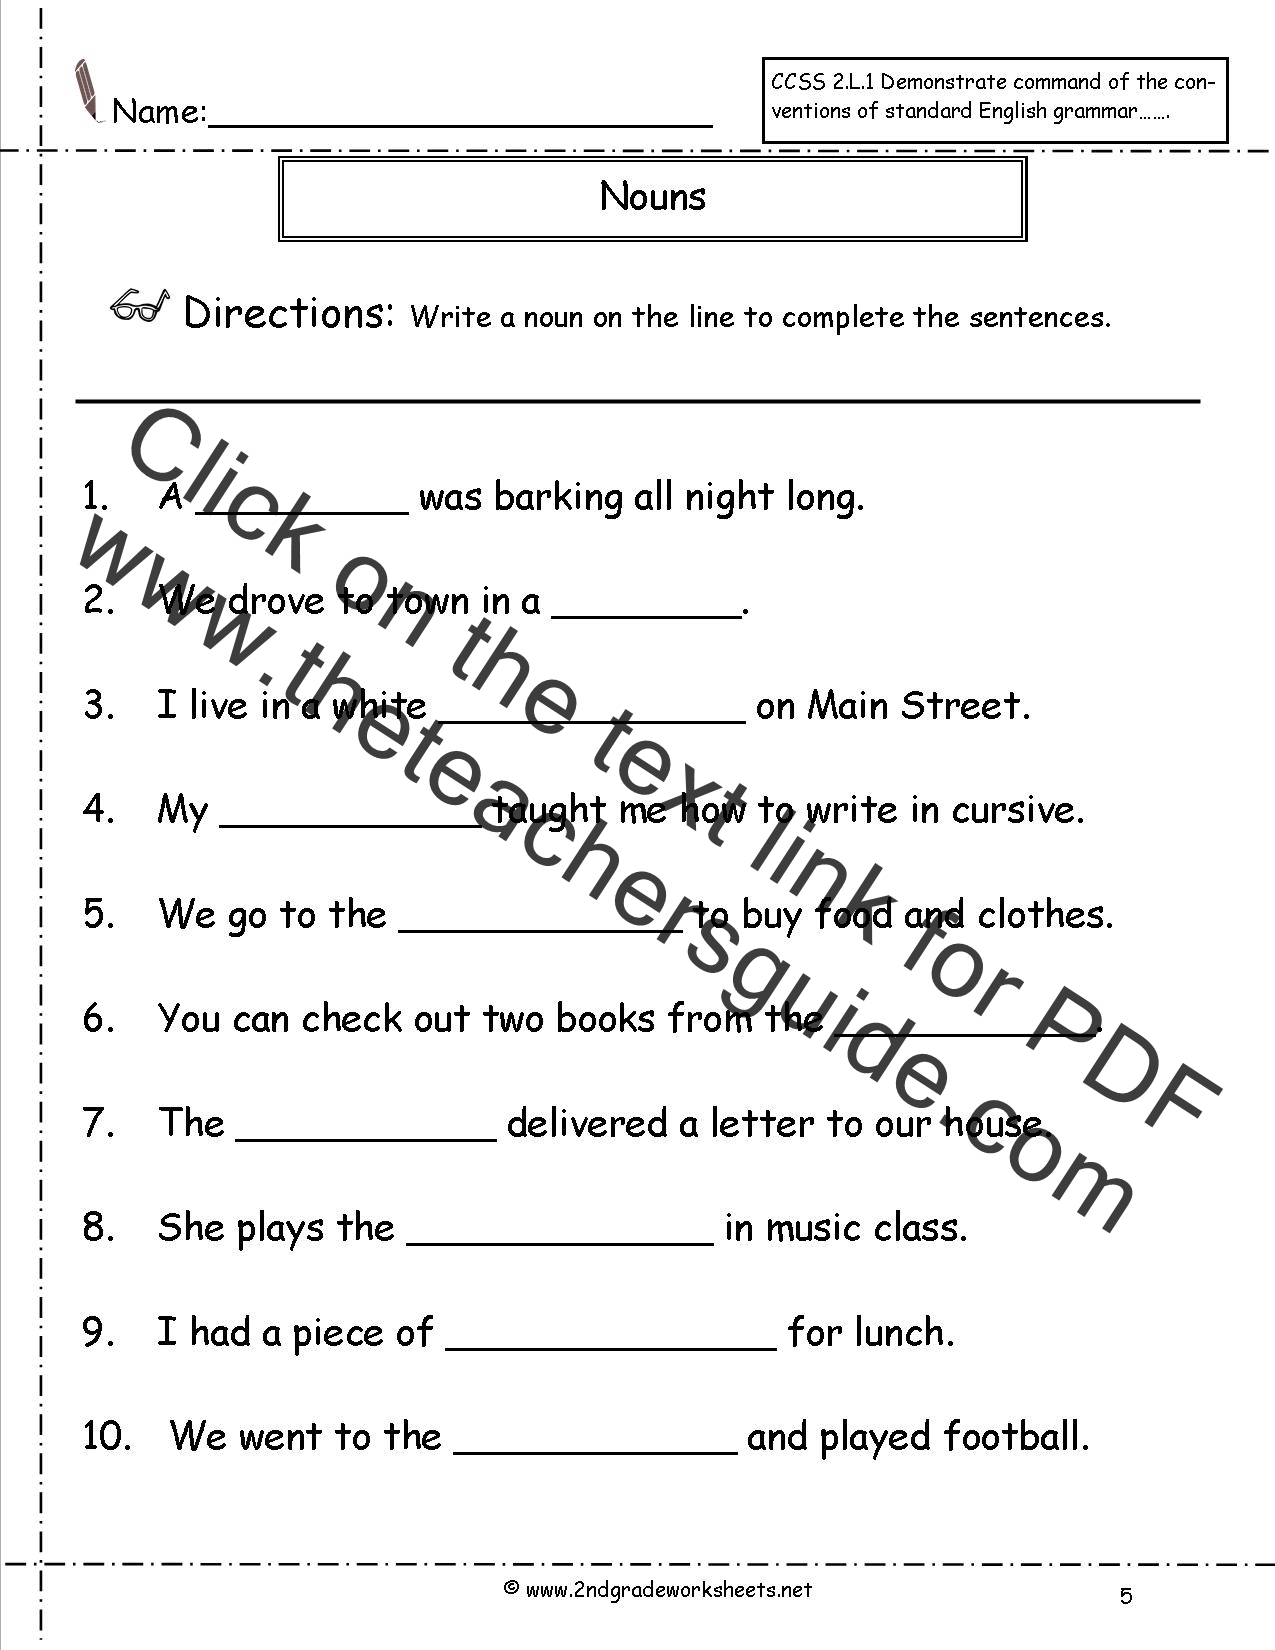 Printables Nouns Worksheet nouns worksheets and printouts worksheet